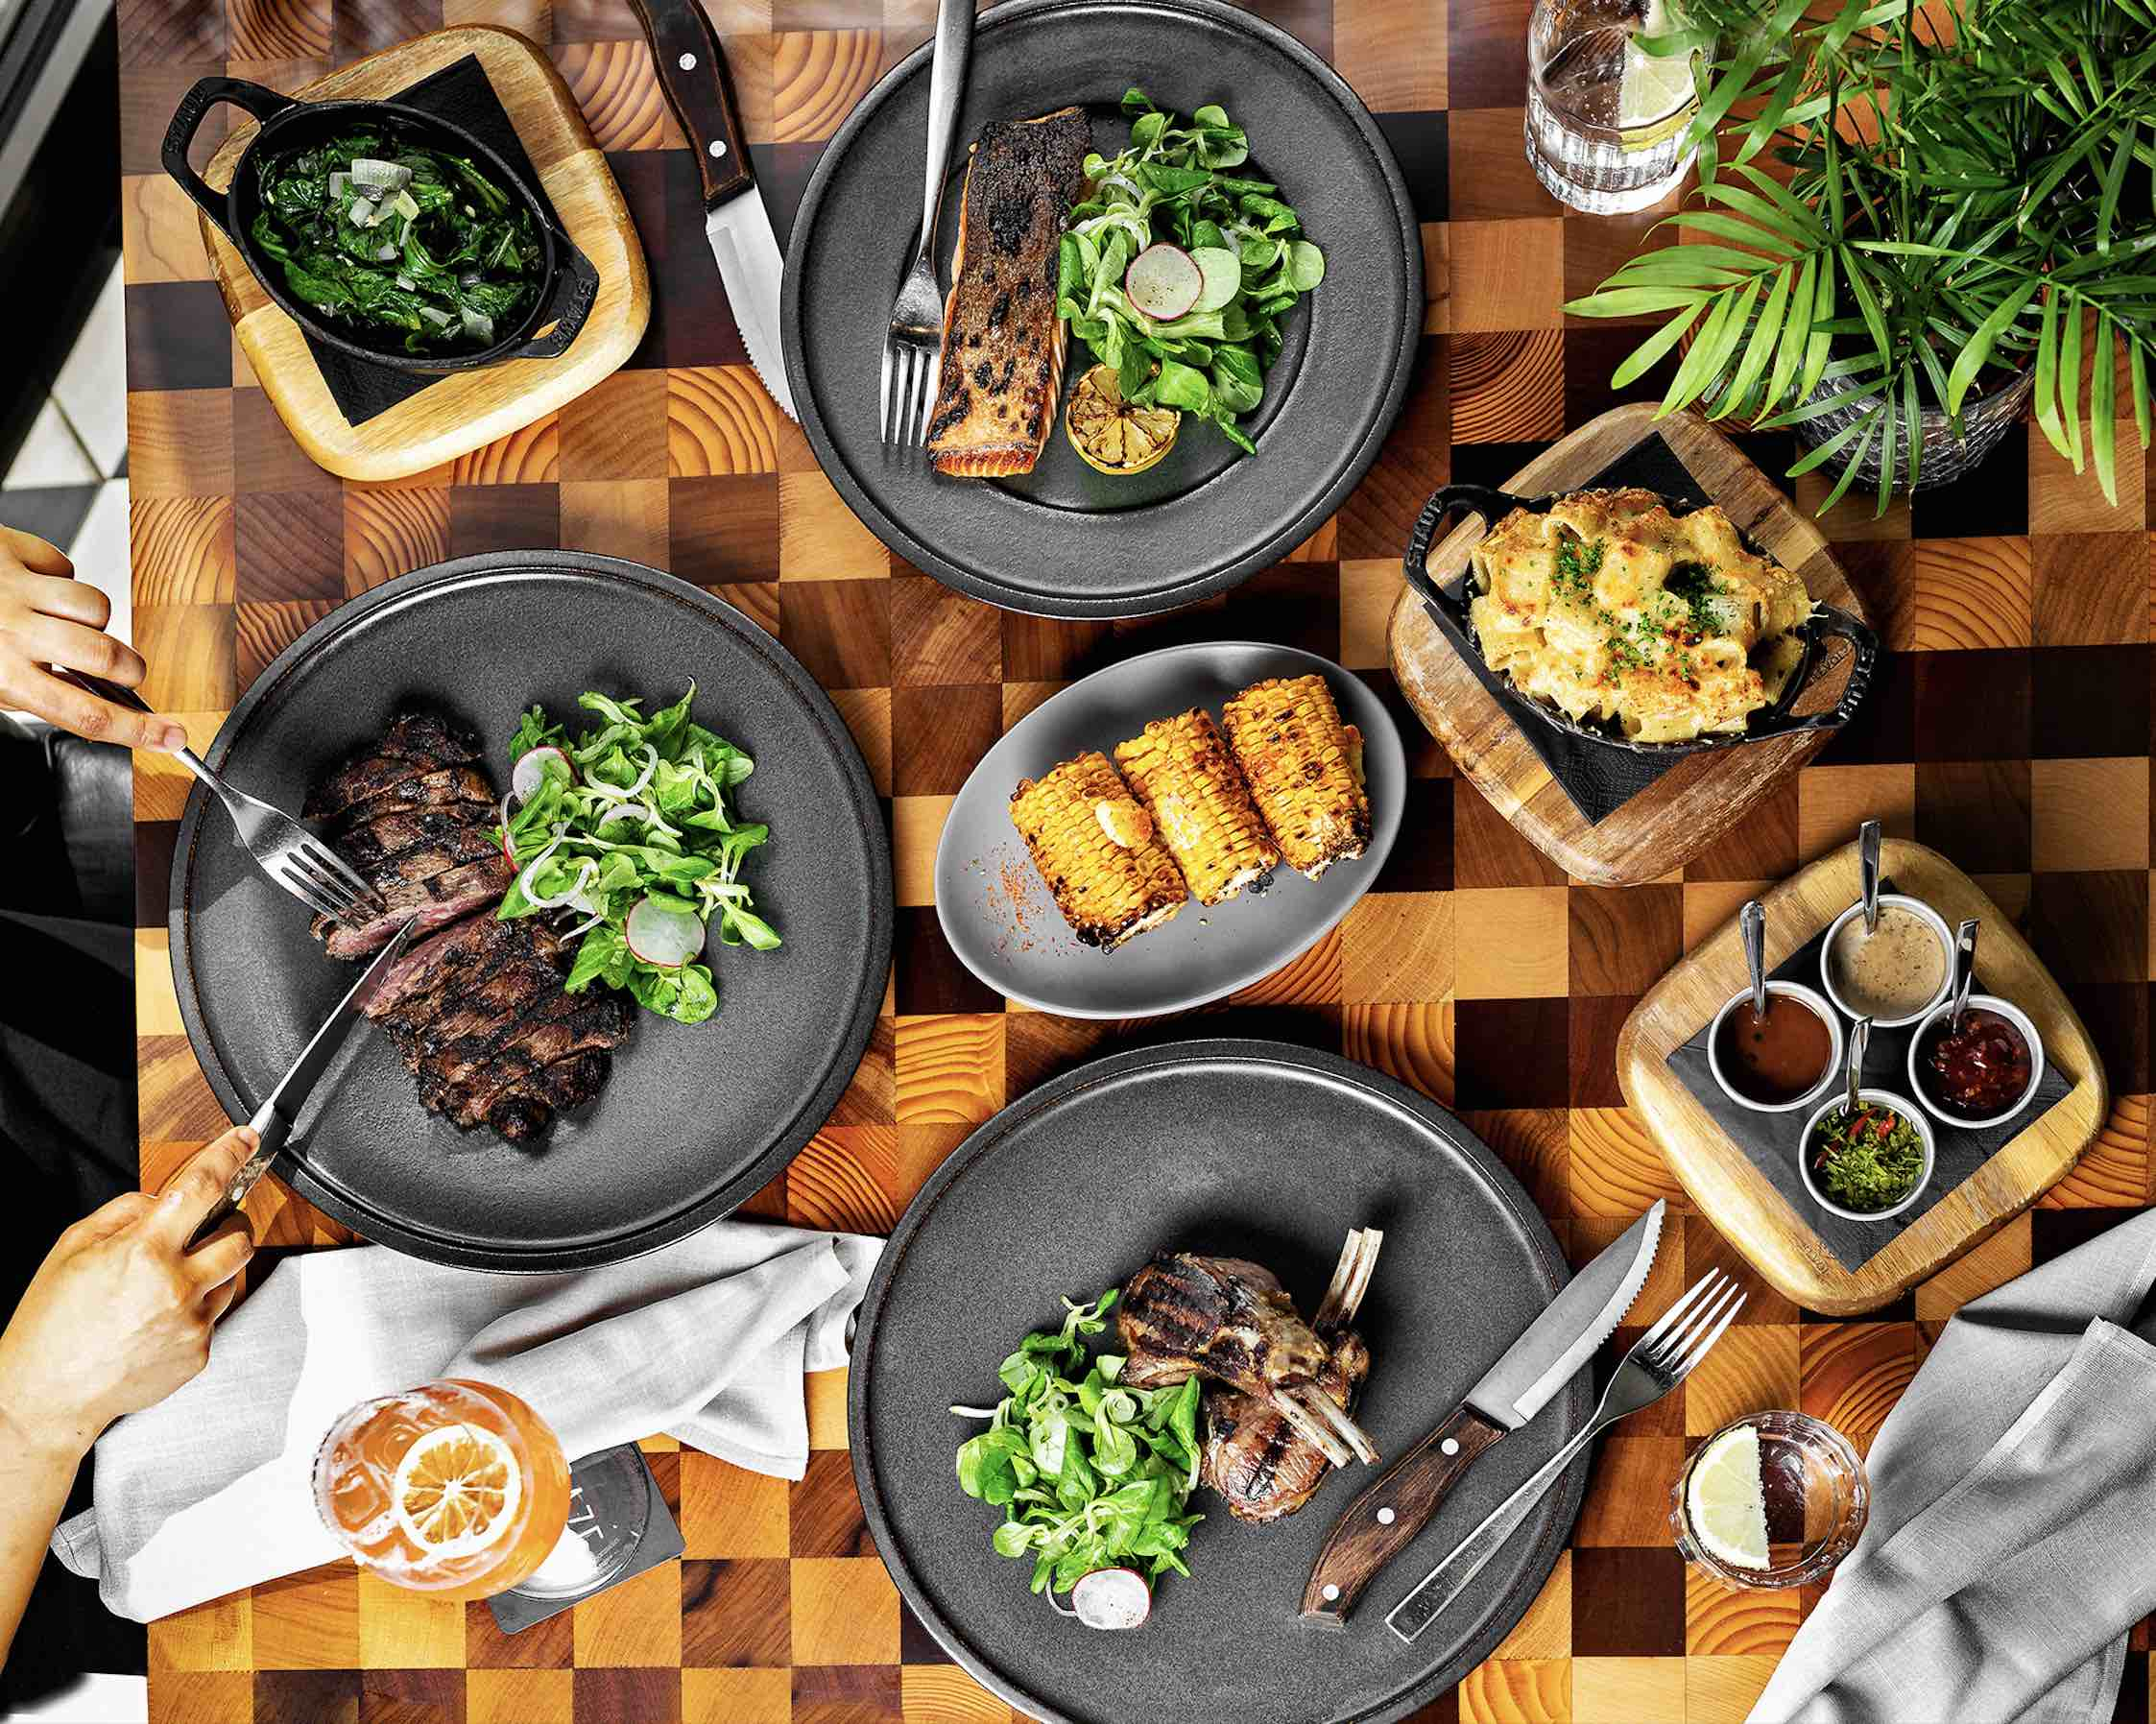 gather-your-friends-for-a-fun-and-relaxed-gourmet-brunch-at-city-walk's-urban-steakhouse